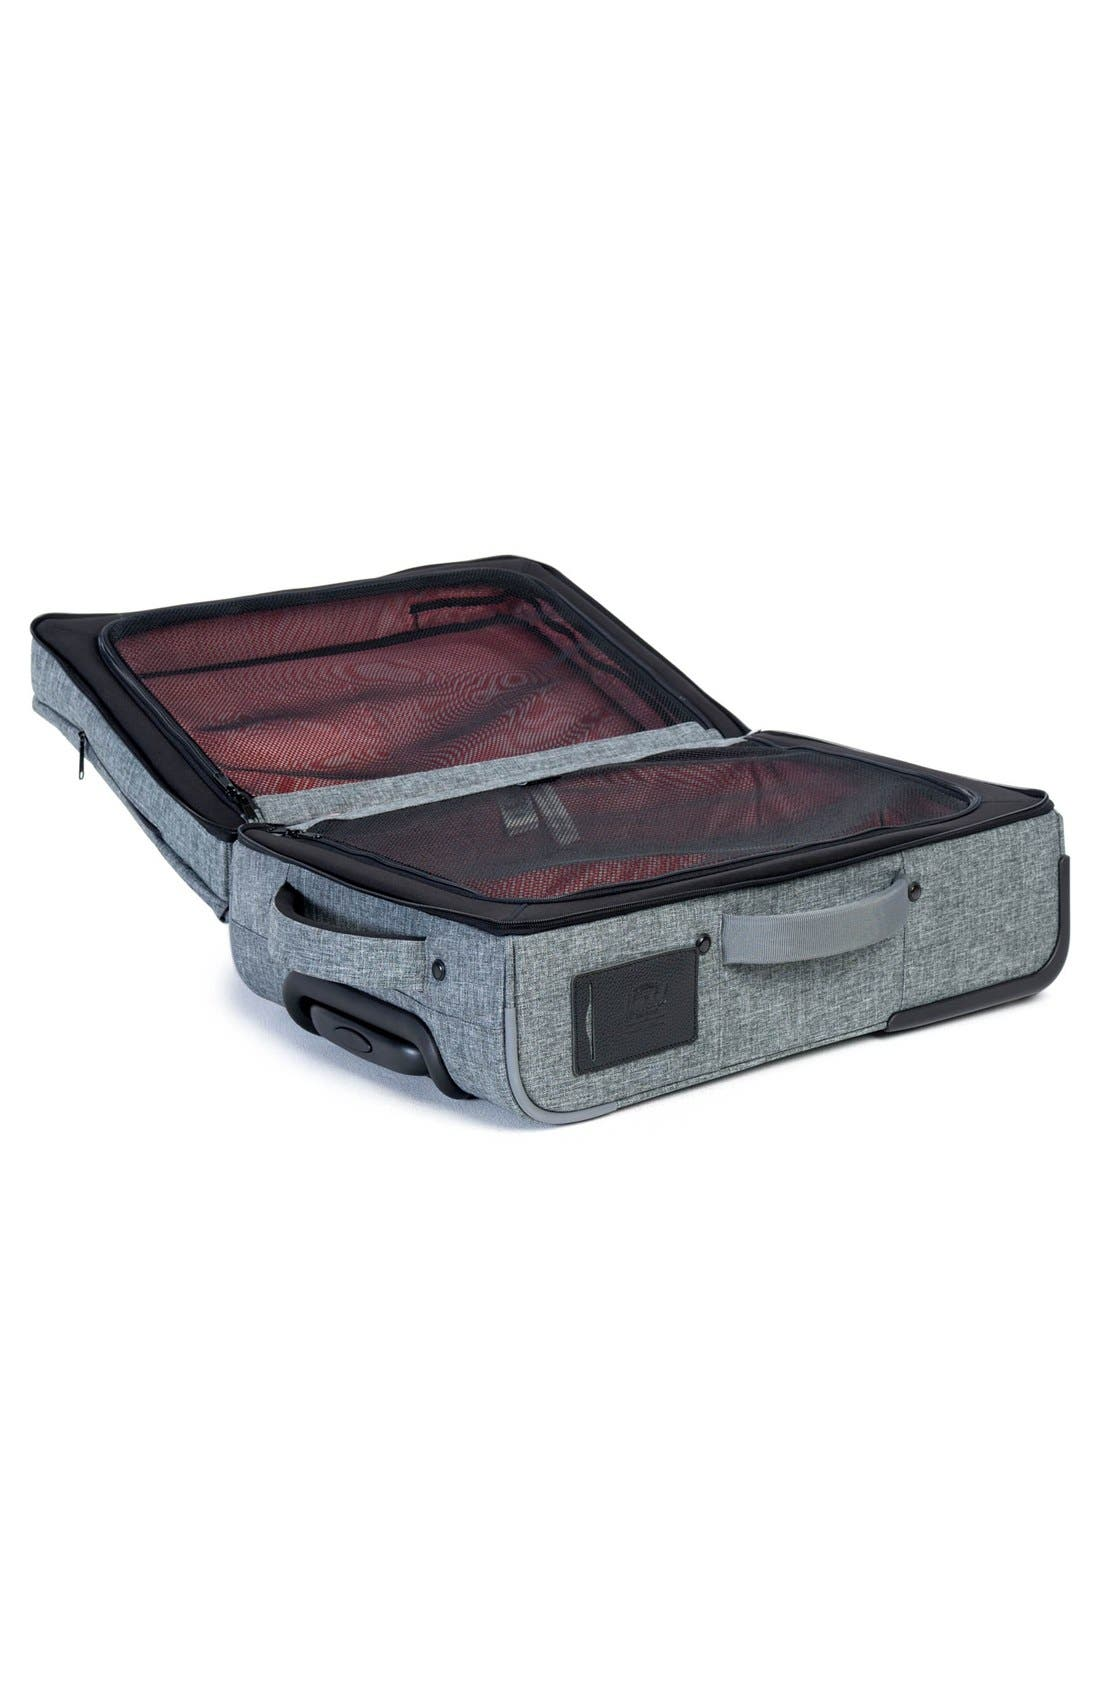 Alternate Image 2  - Herschel Supply Co. 'New Campaign' Rolling Suitcase (24 Inch)